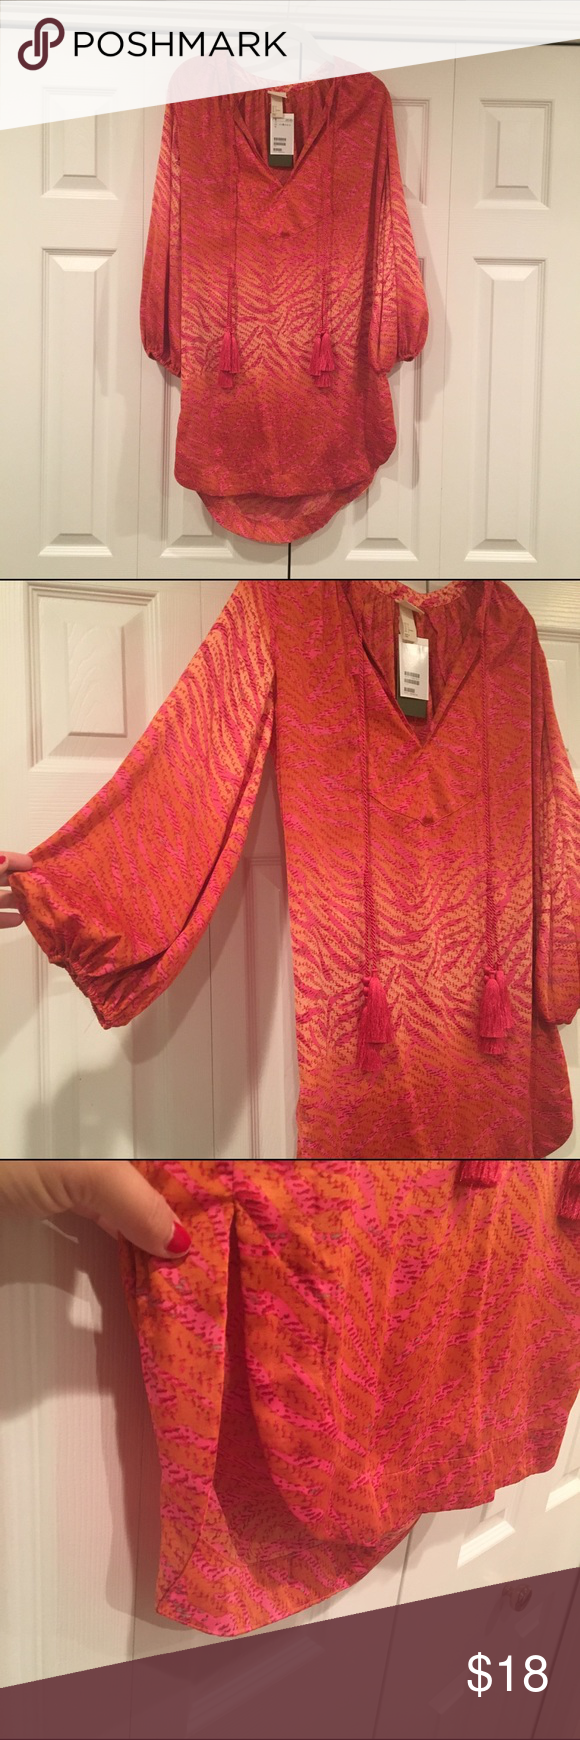 "H&M orange/pink printed tunic beach coverup H&M pink zebra patterned tunic with different shades of orange. Size 6 but fits a little bigger - think it would make a perfect and fun beach coverup for spring break. Sleeves are wider and cinched at end. Roped tassels. Last pic is to show the side slit (little too short to wear as dress) length in front is 31"", back is 33"". So pretty in person and great fabric - NWT! H&M Dresses"